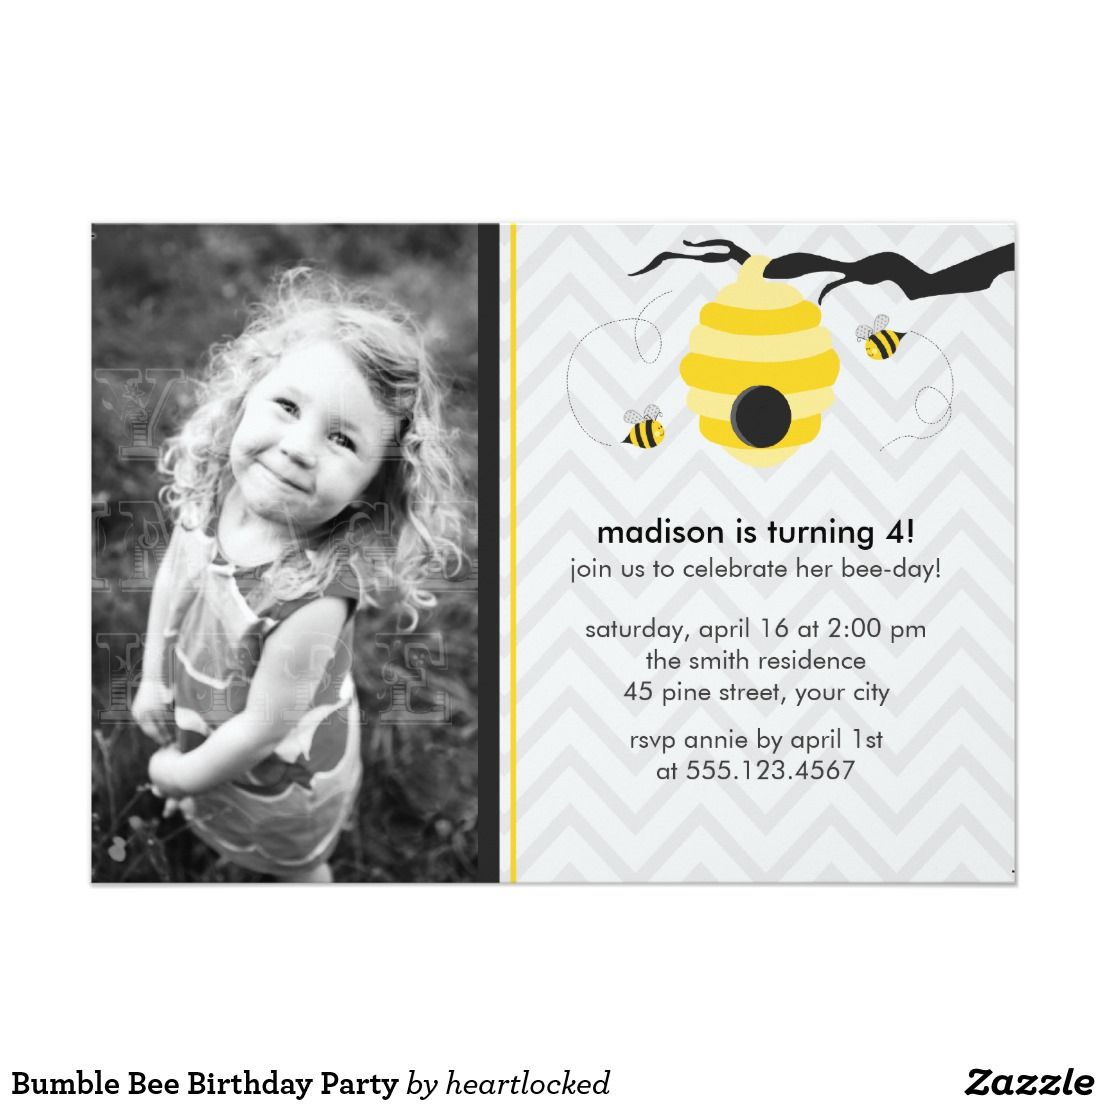 Bumble bee birthday party card bumble bee birthday kids birthday bumble bee birthday party card filmwisefo Images